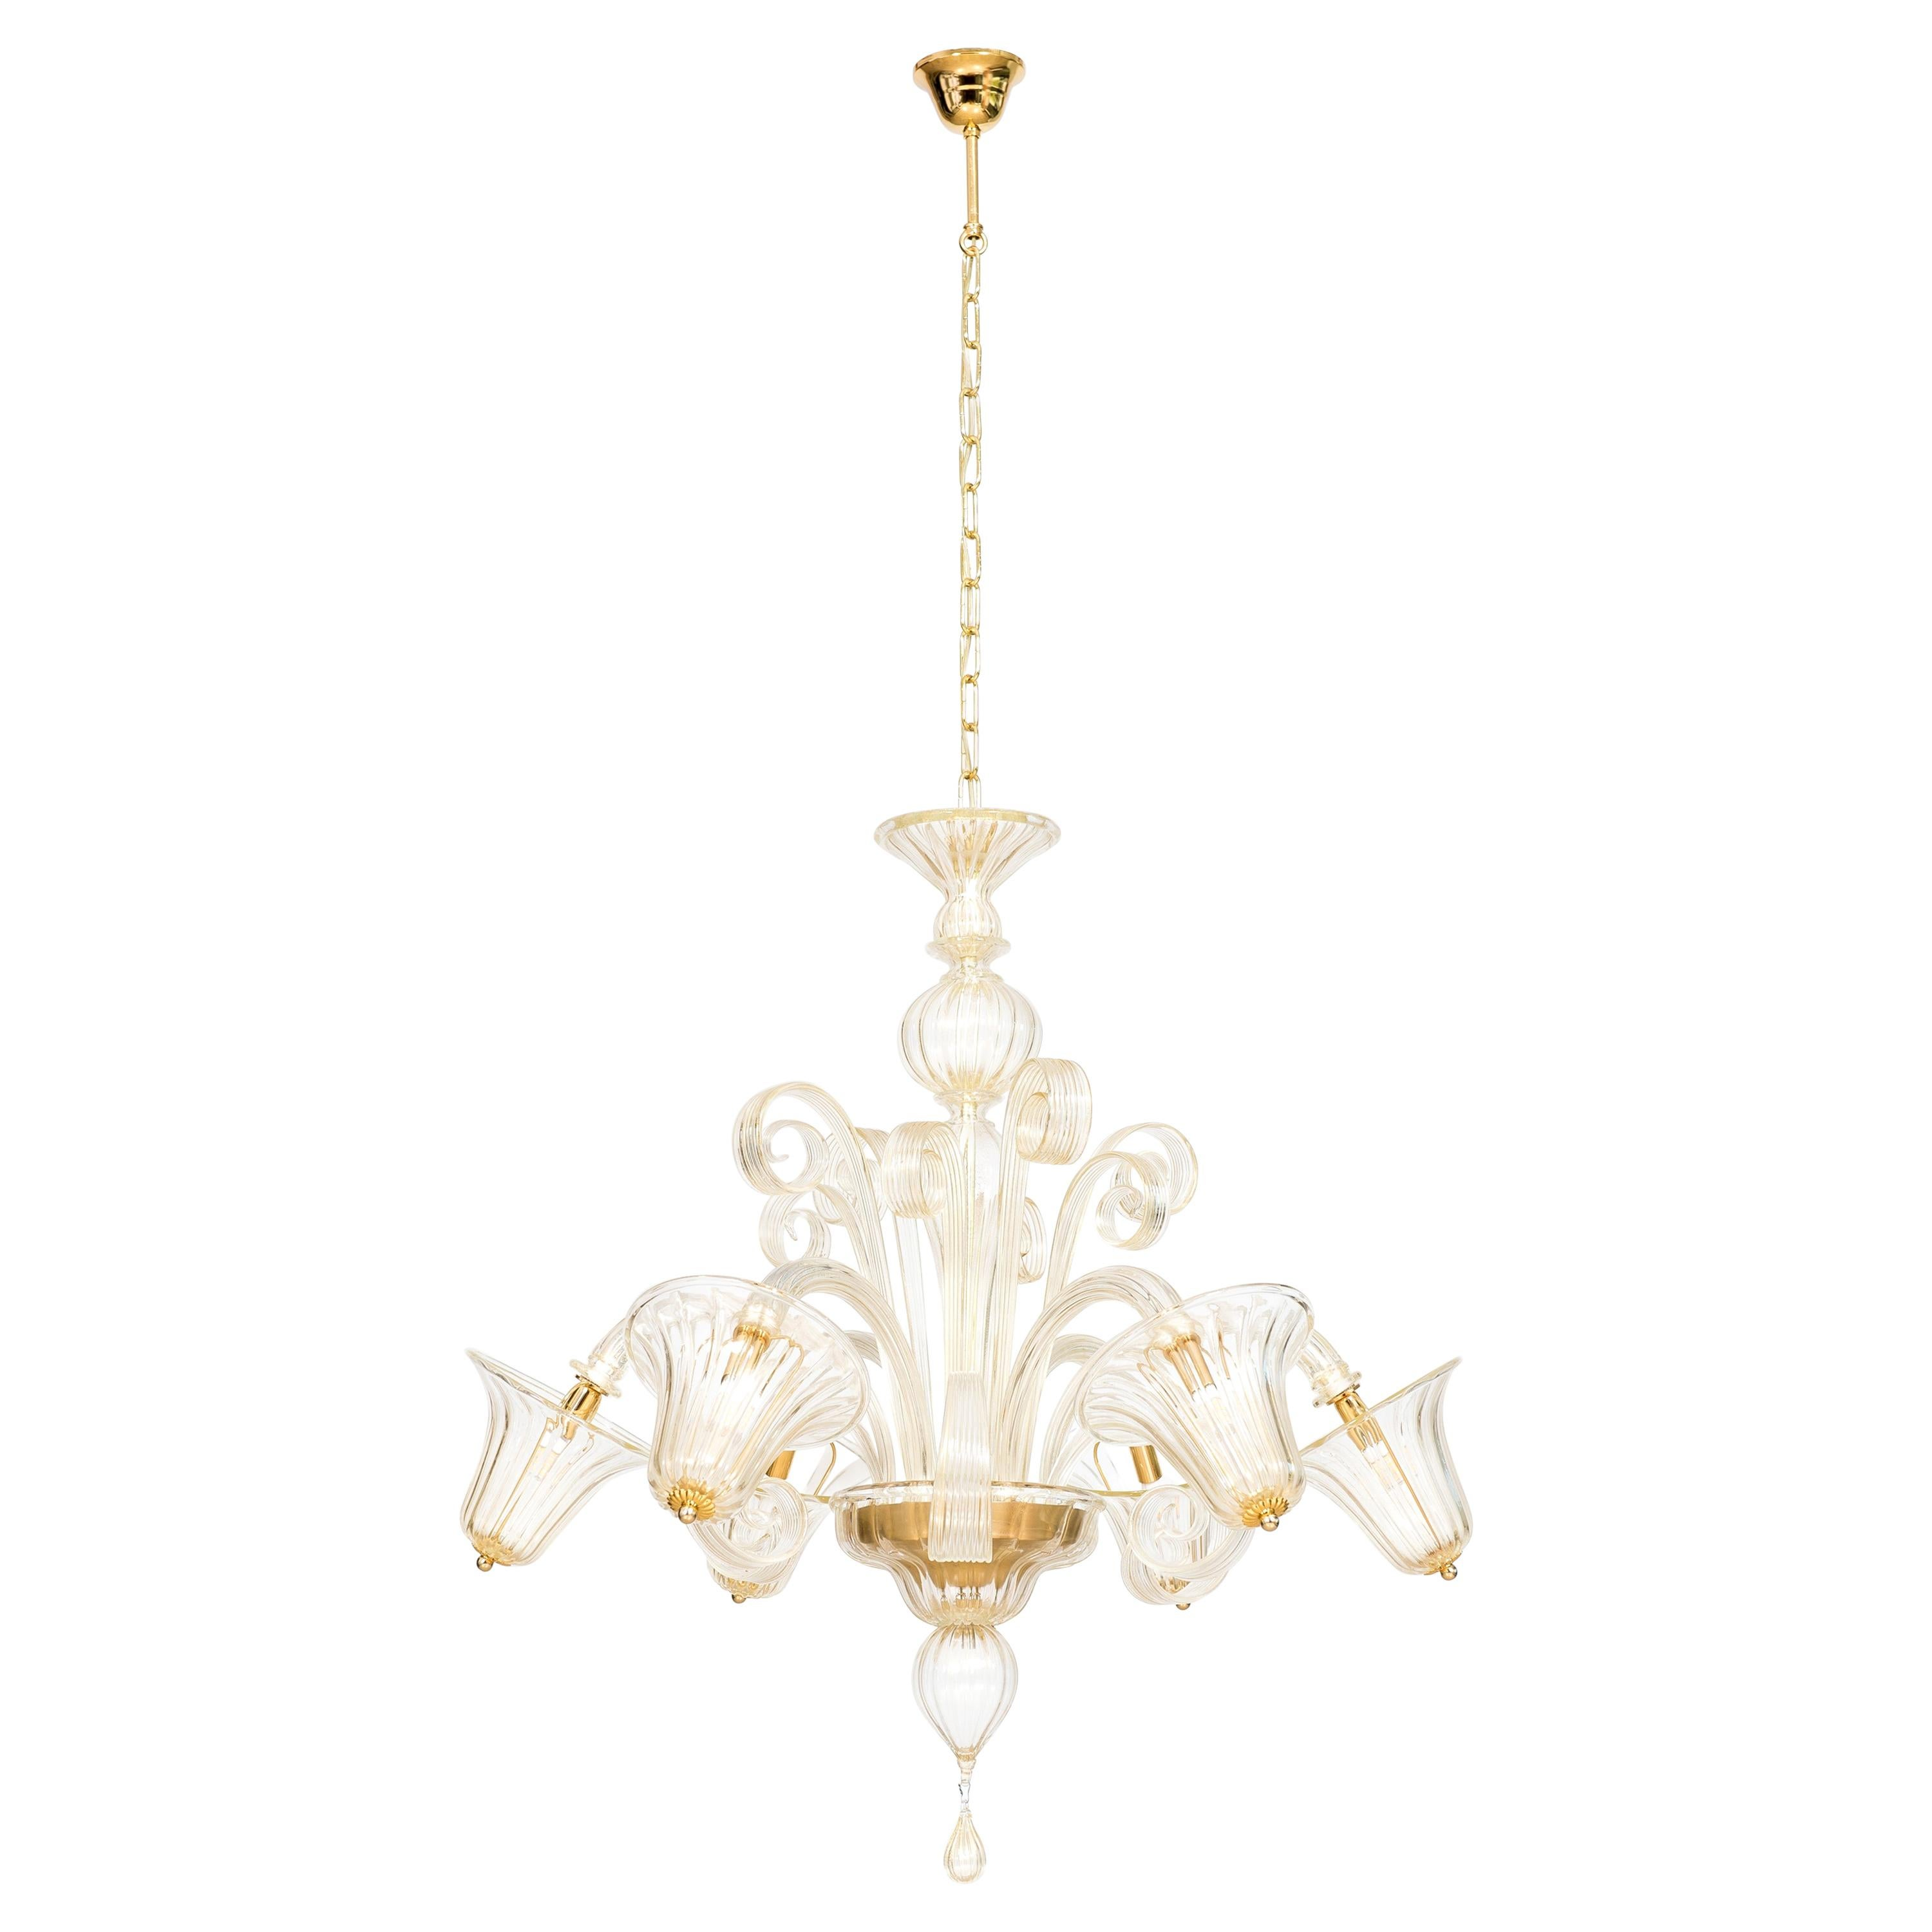 Bells and Pastorals Chandelier Blown Murano Glass Gold Color Contemporary, Italy